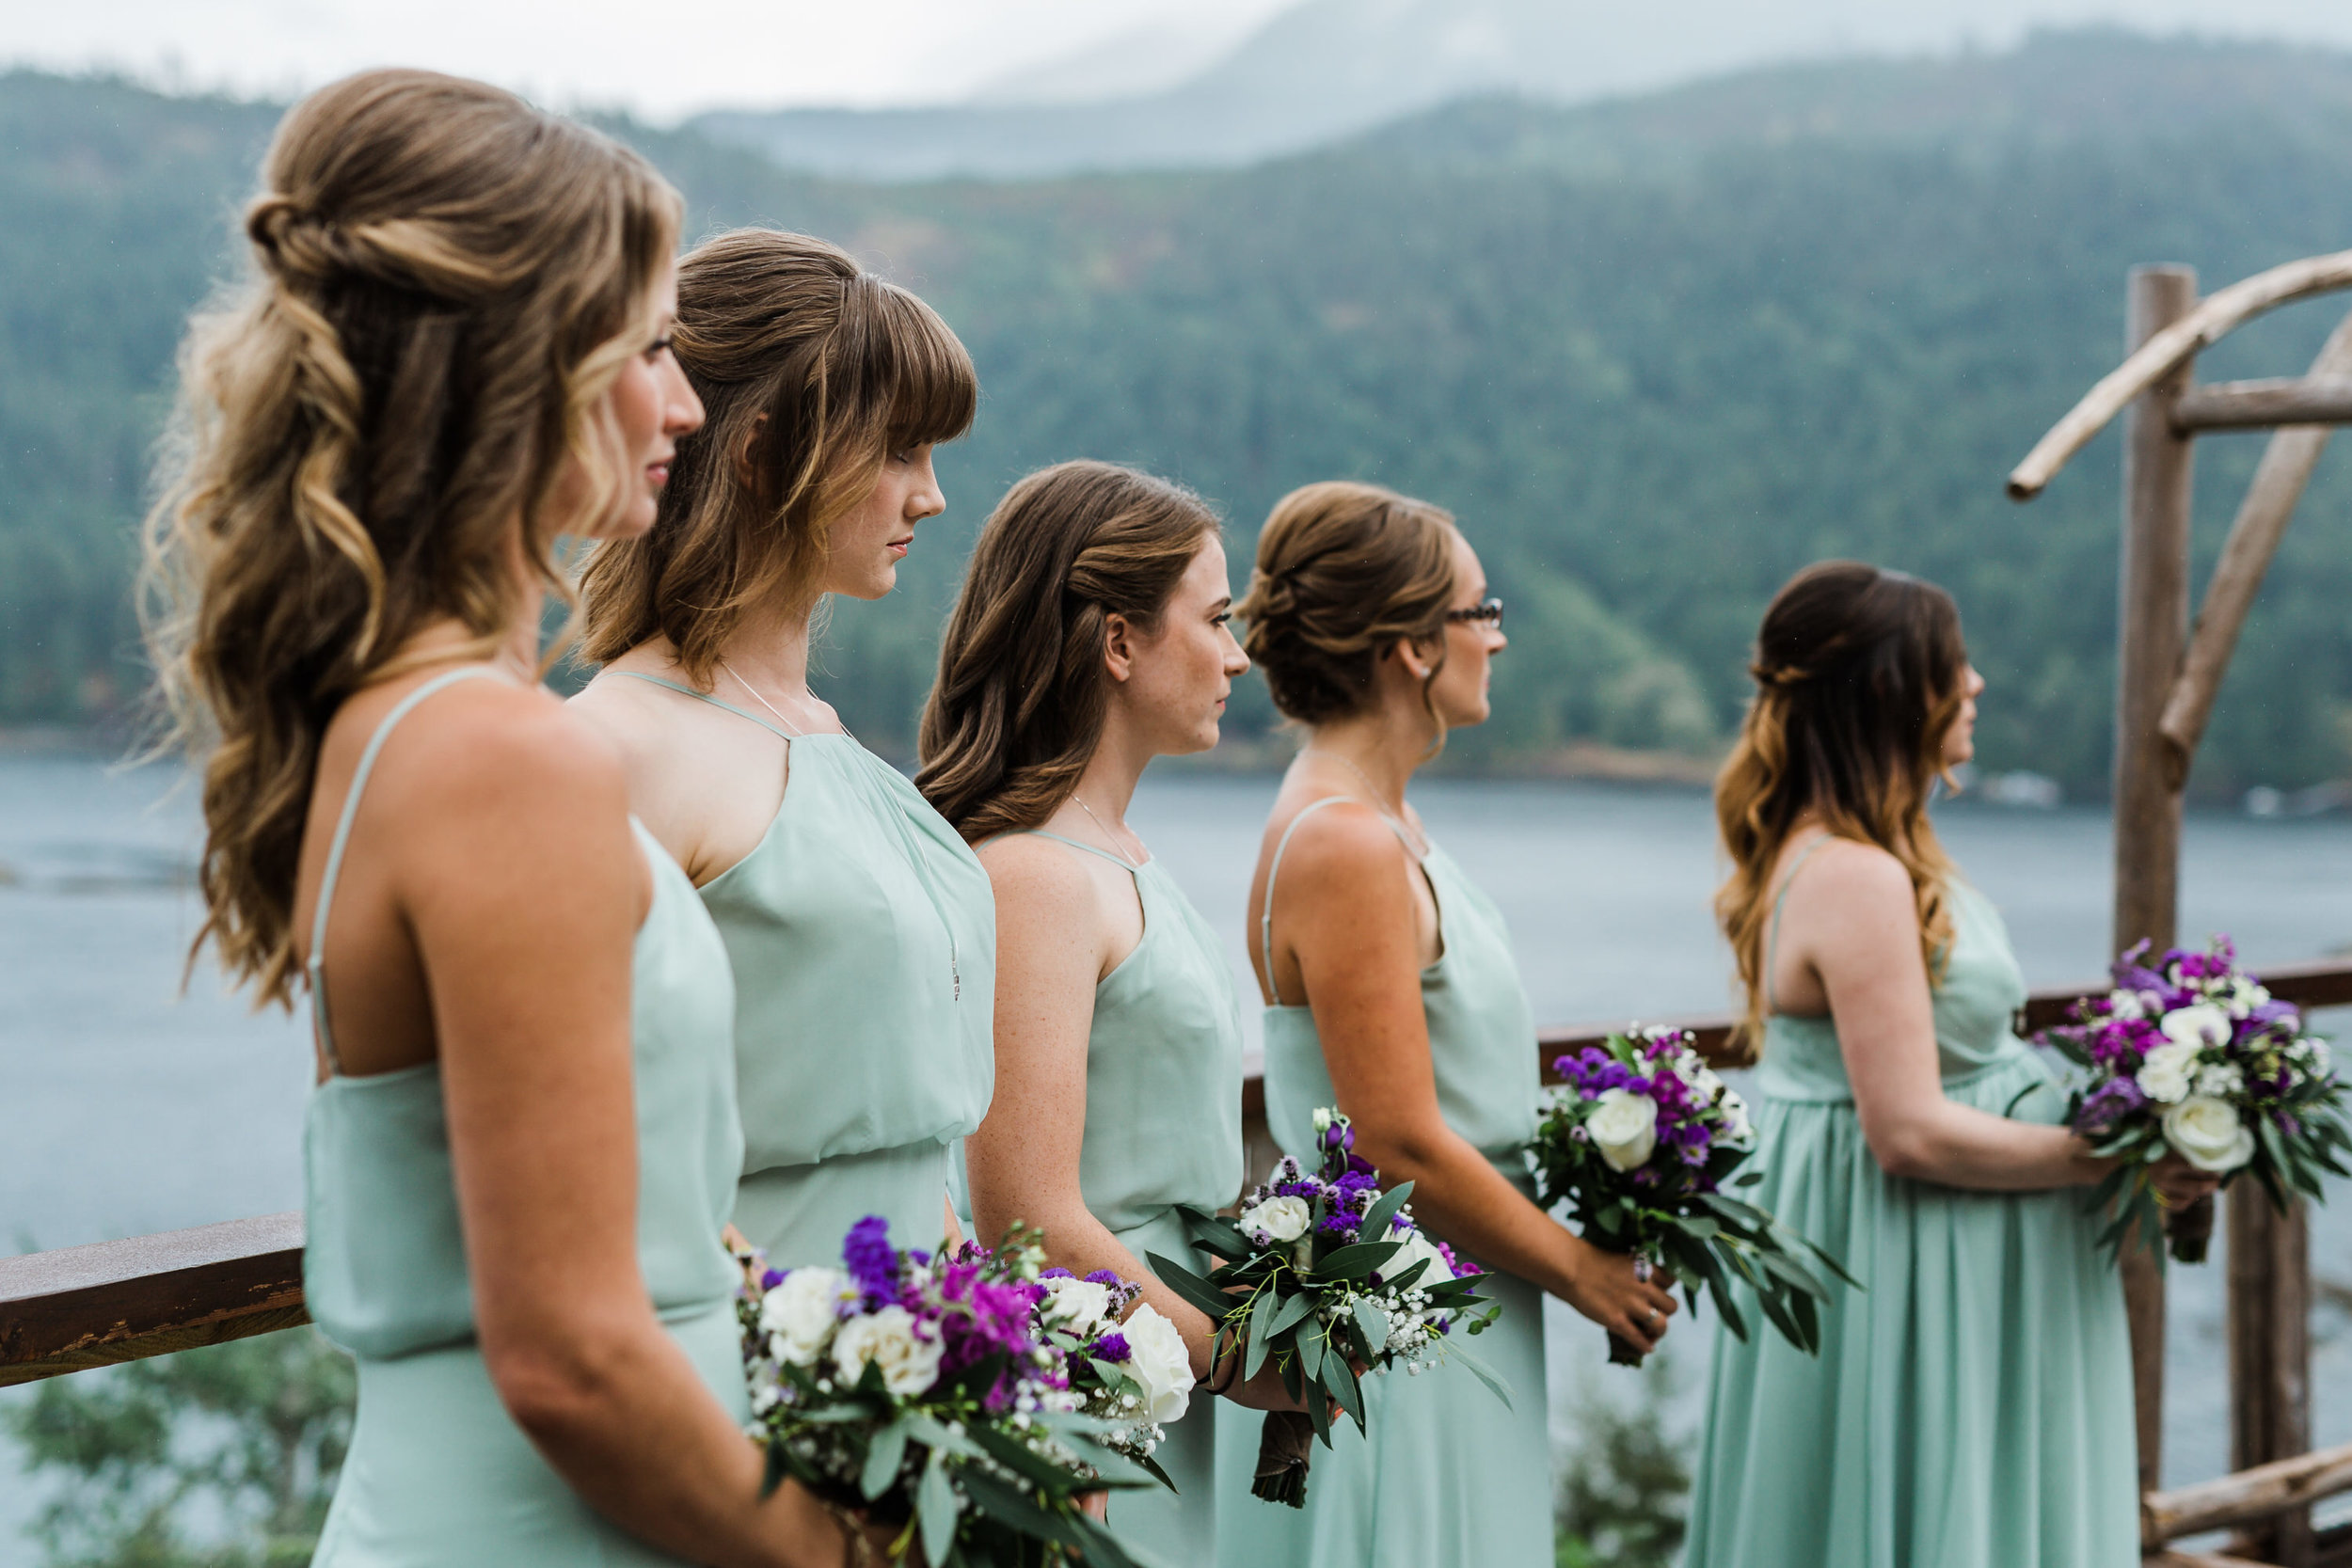 West Coast Wilderness Lodge Wedding Photos - Vancouver Wedding Photographer & Videographer - Sunshine Coast Wedding Photos - Sunshine Coast Wedding Photographer - Jennifer Picard Photography - IMG_4759.jpg